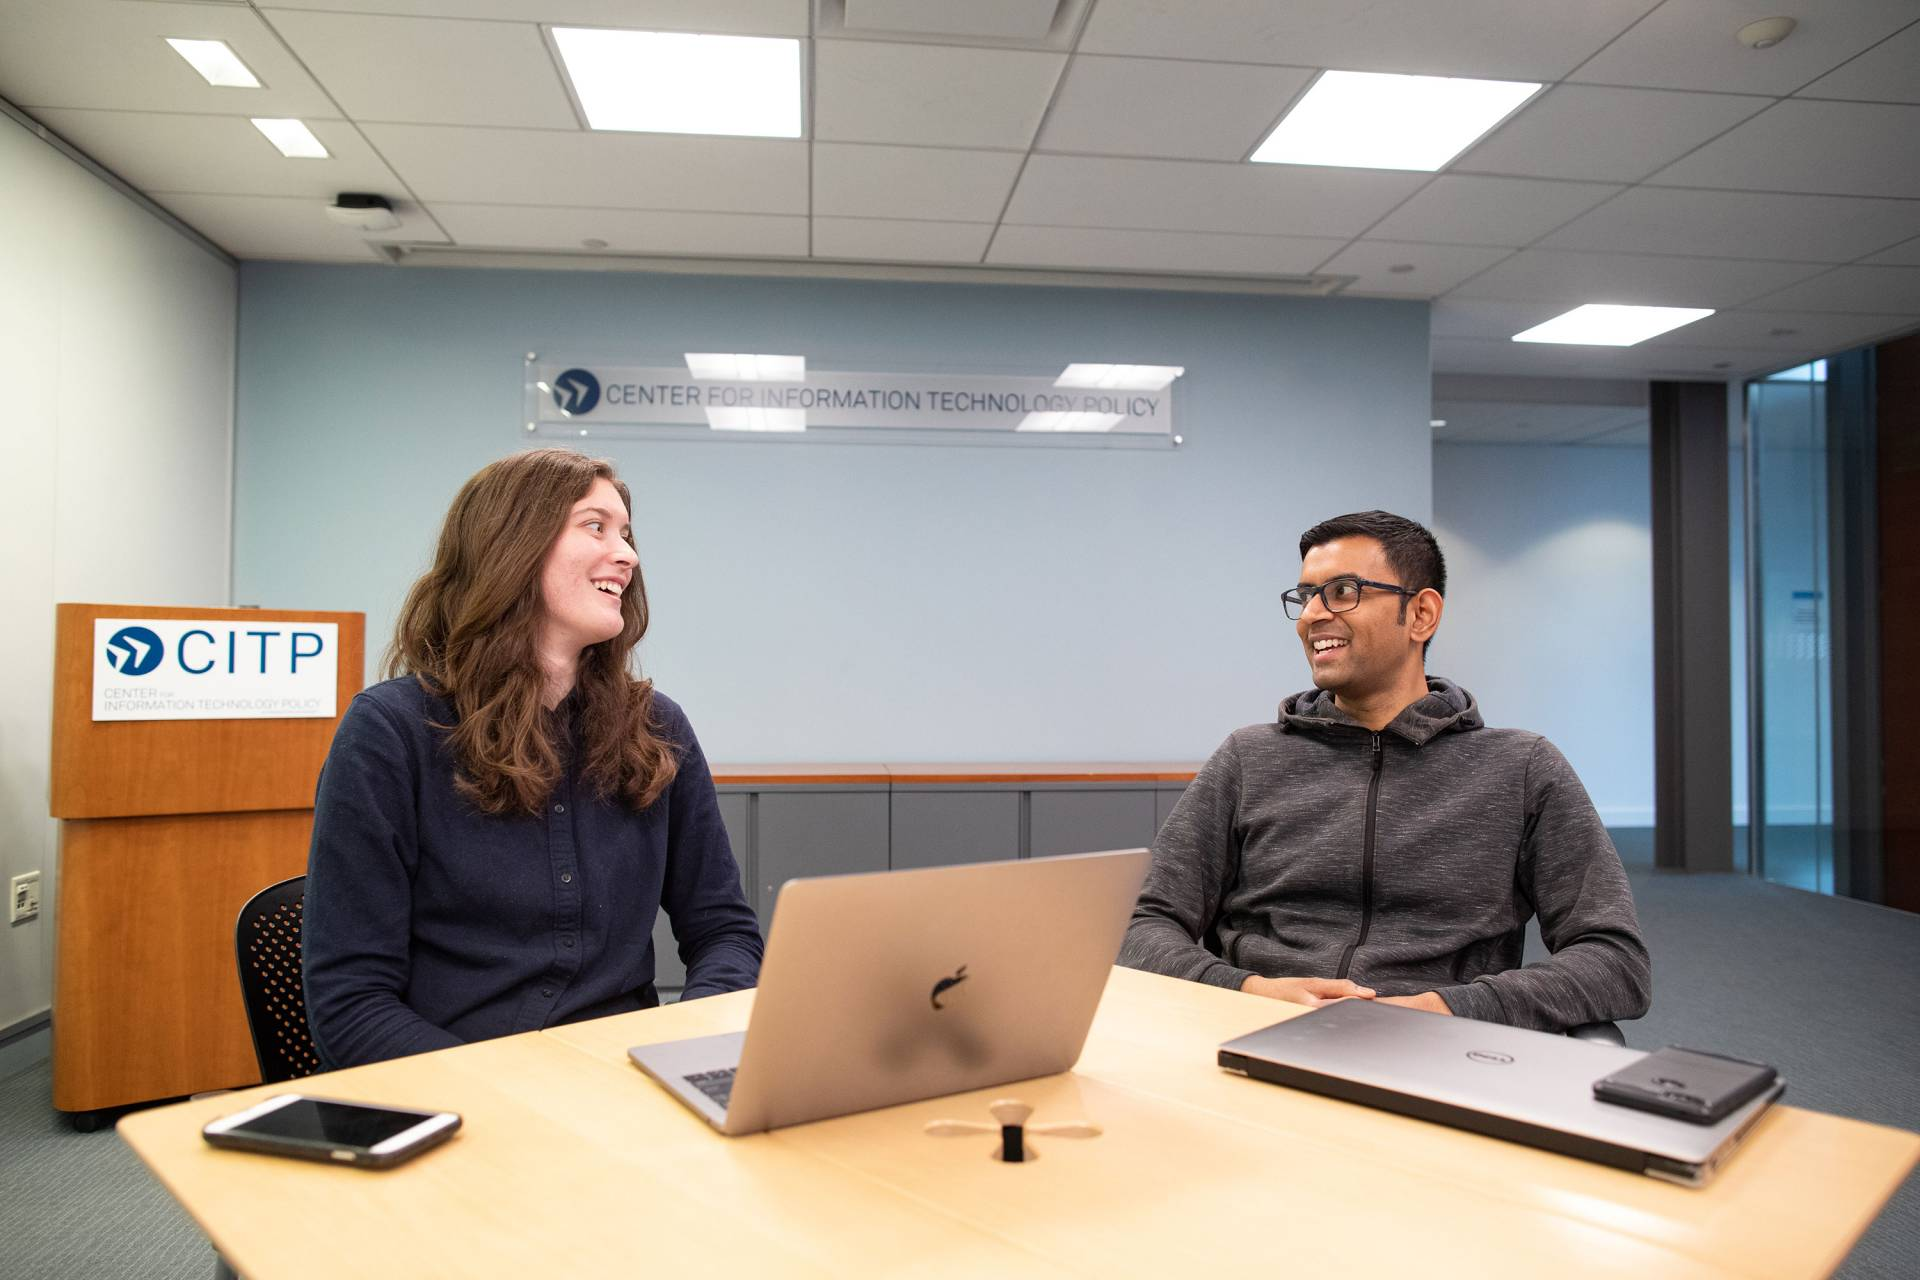 A graduate student and a professor speak over a laptop